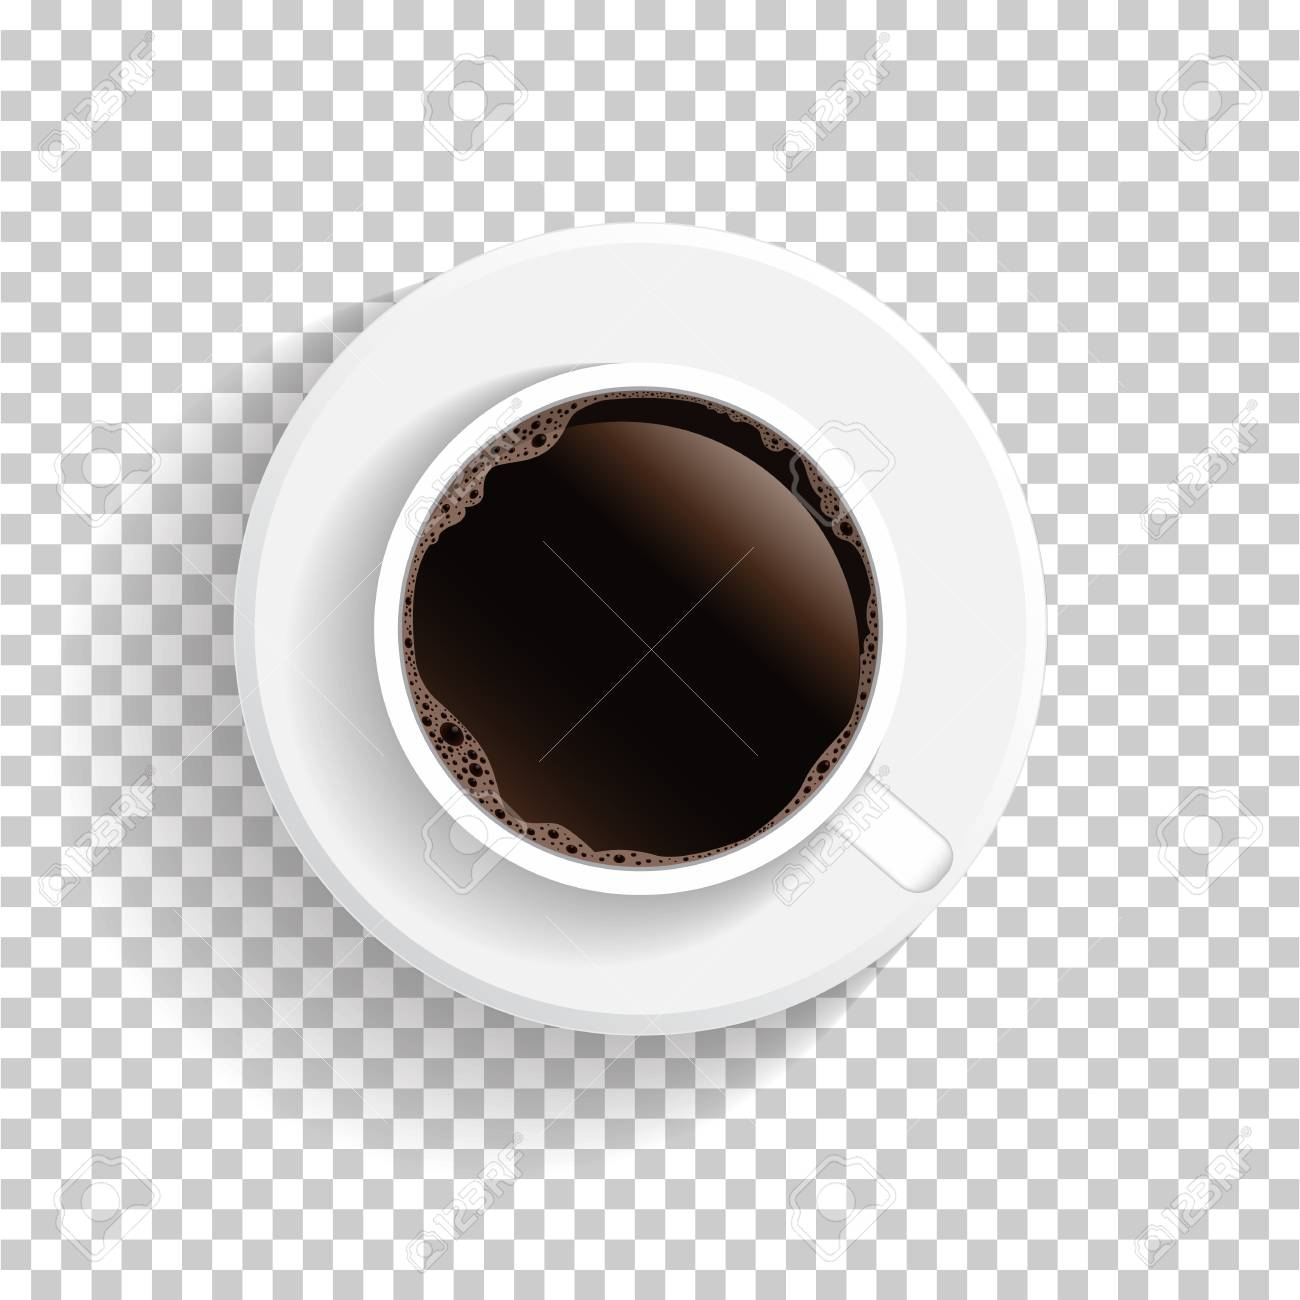 Realistic Top View White Coffee Cup And Saucer Isolated On Transparent Royalty Free Cliparts Vectors And Stock Illustration Image 91509397